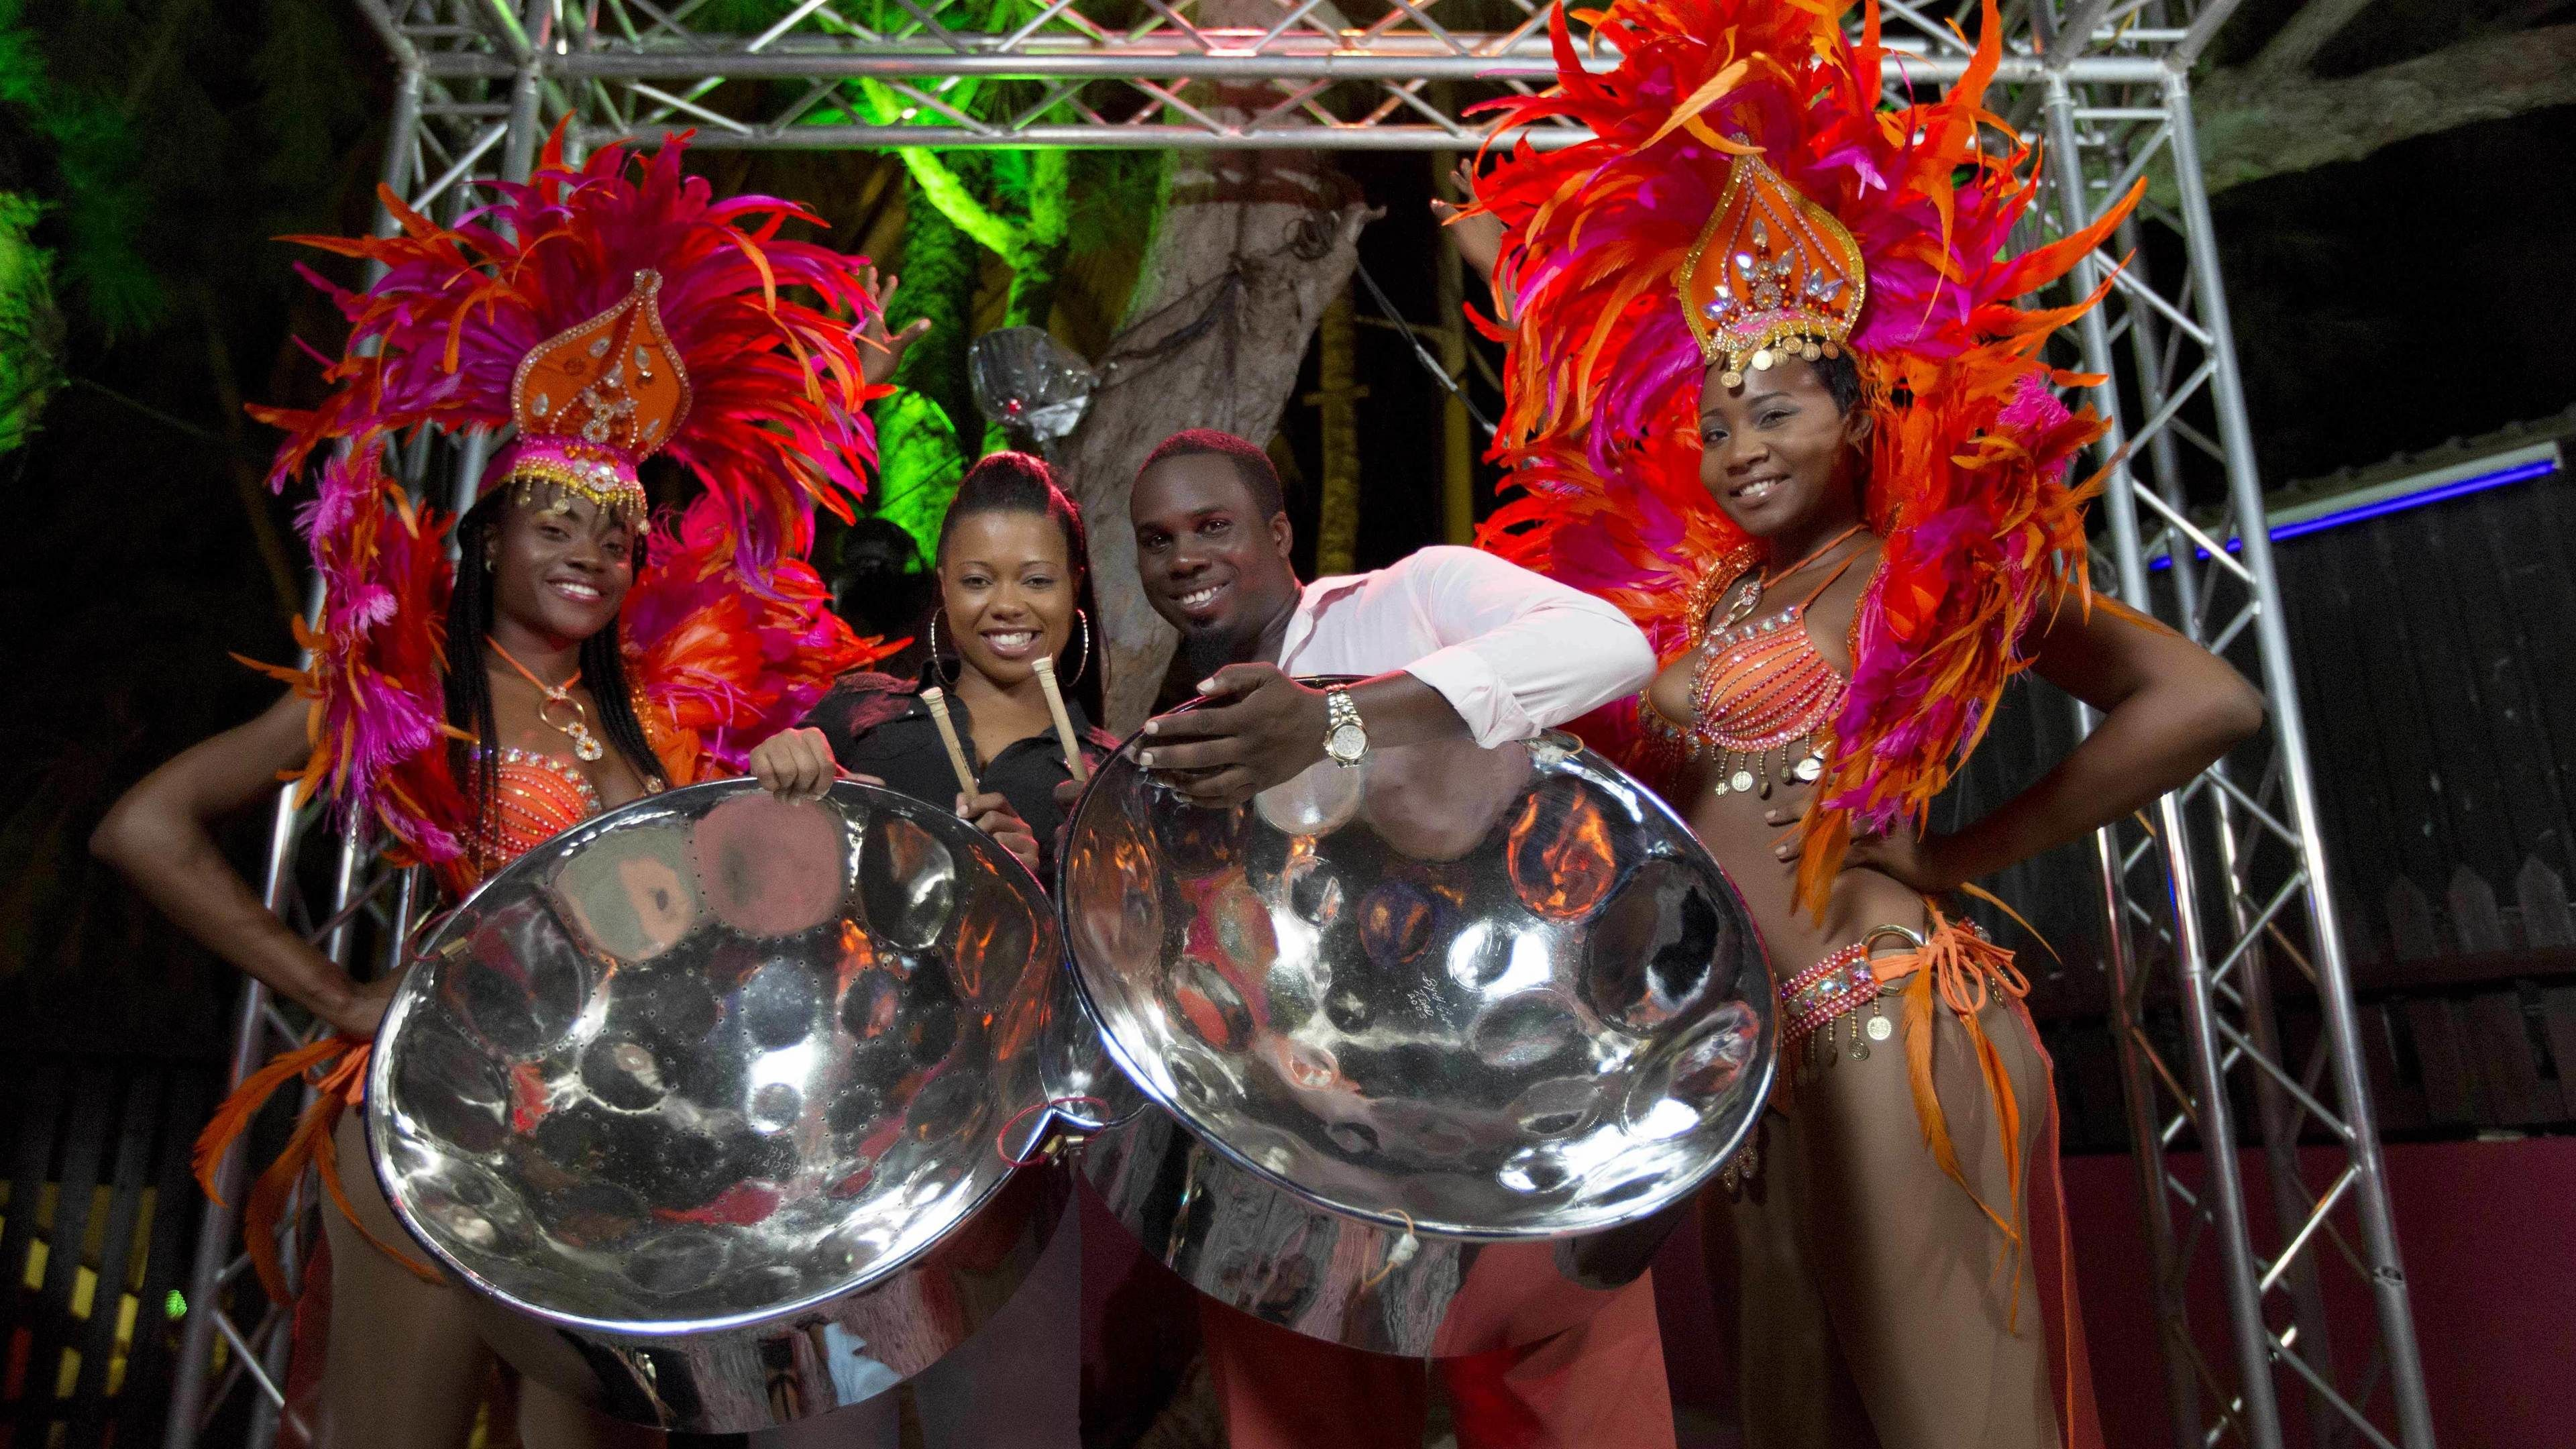 Performers in colorful costumes in Barbados